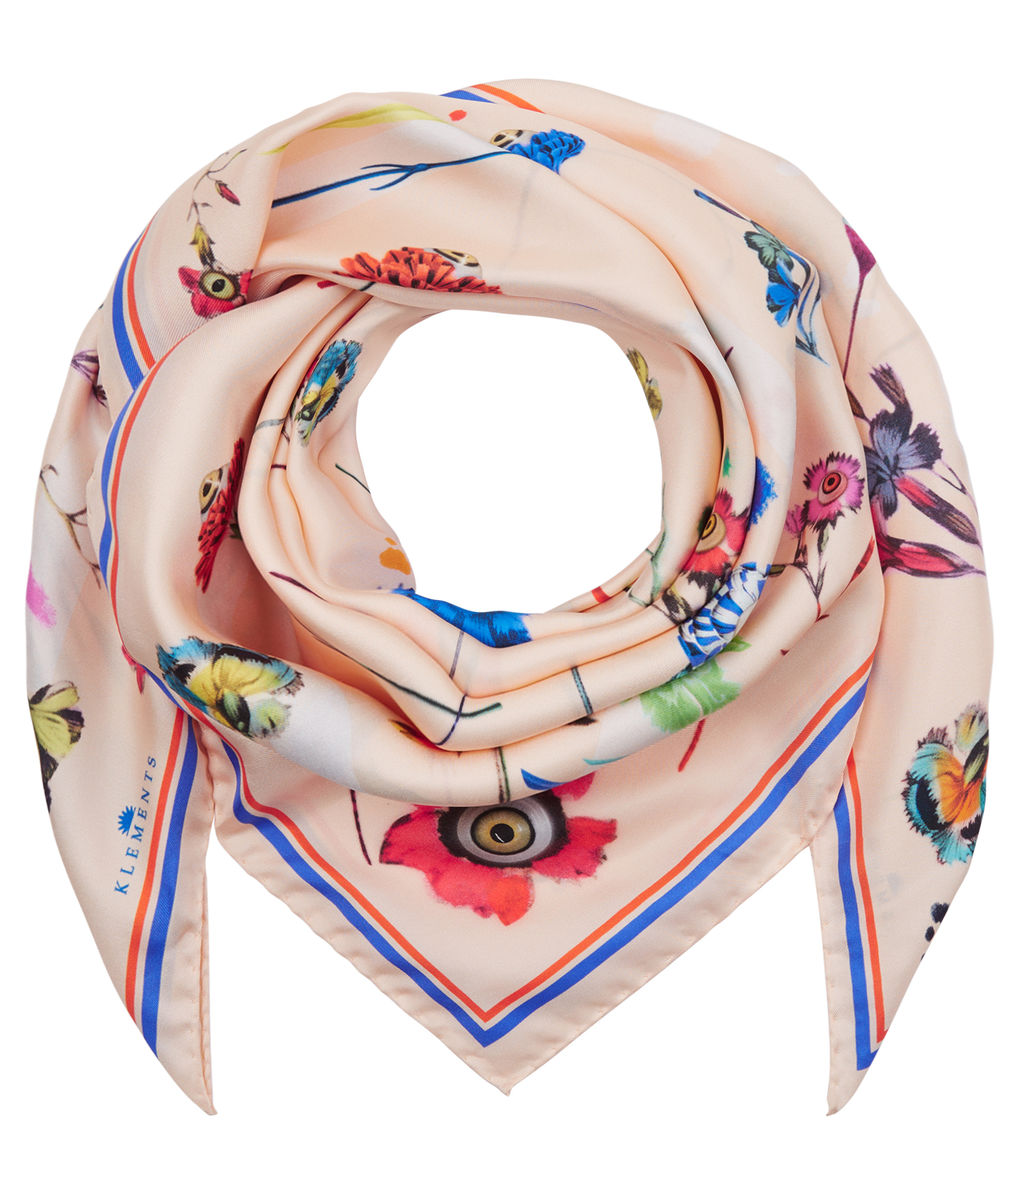 Medium scarf in floral explosion print - product images  of